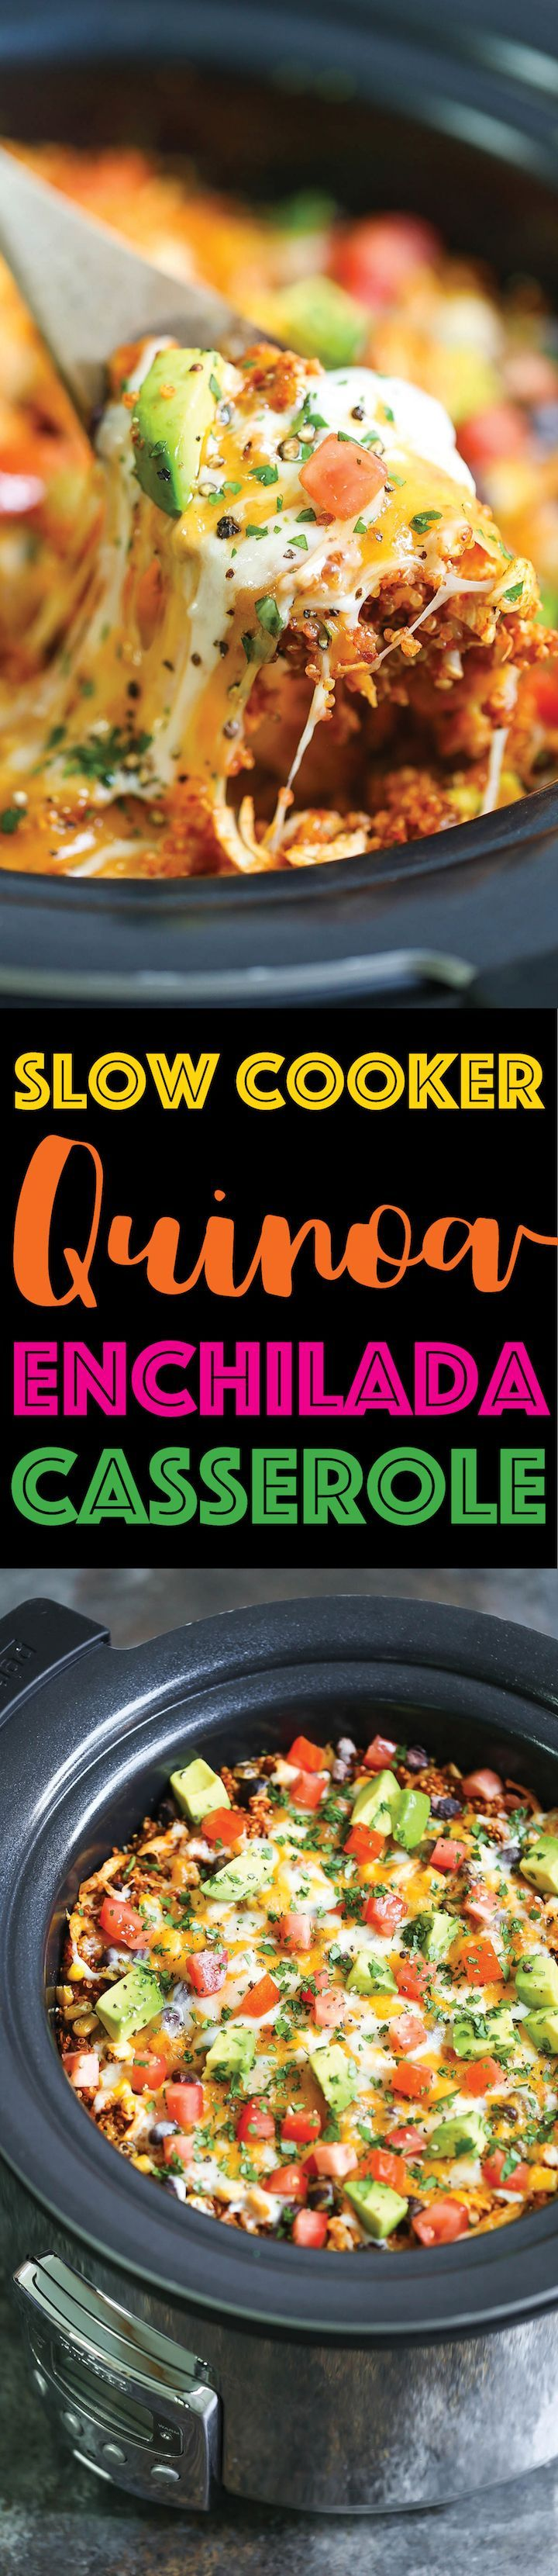 Slow Cooker Quinoa Enchilada Casserole - SKINNY, lightened up and healthy enchilada bake!!!! Made right in the crockpot!!! So cheesy and yet guilt-free!!!